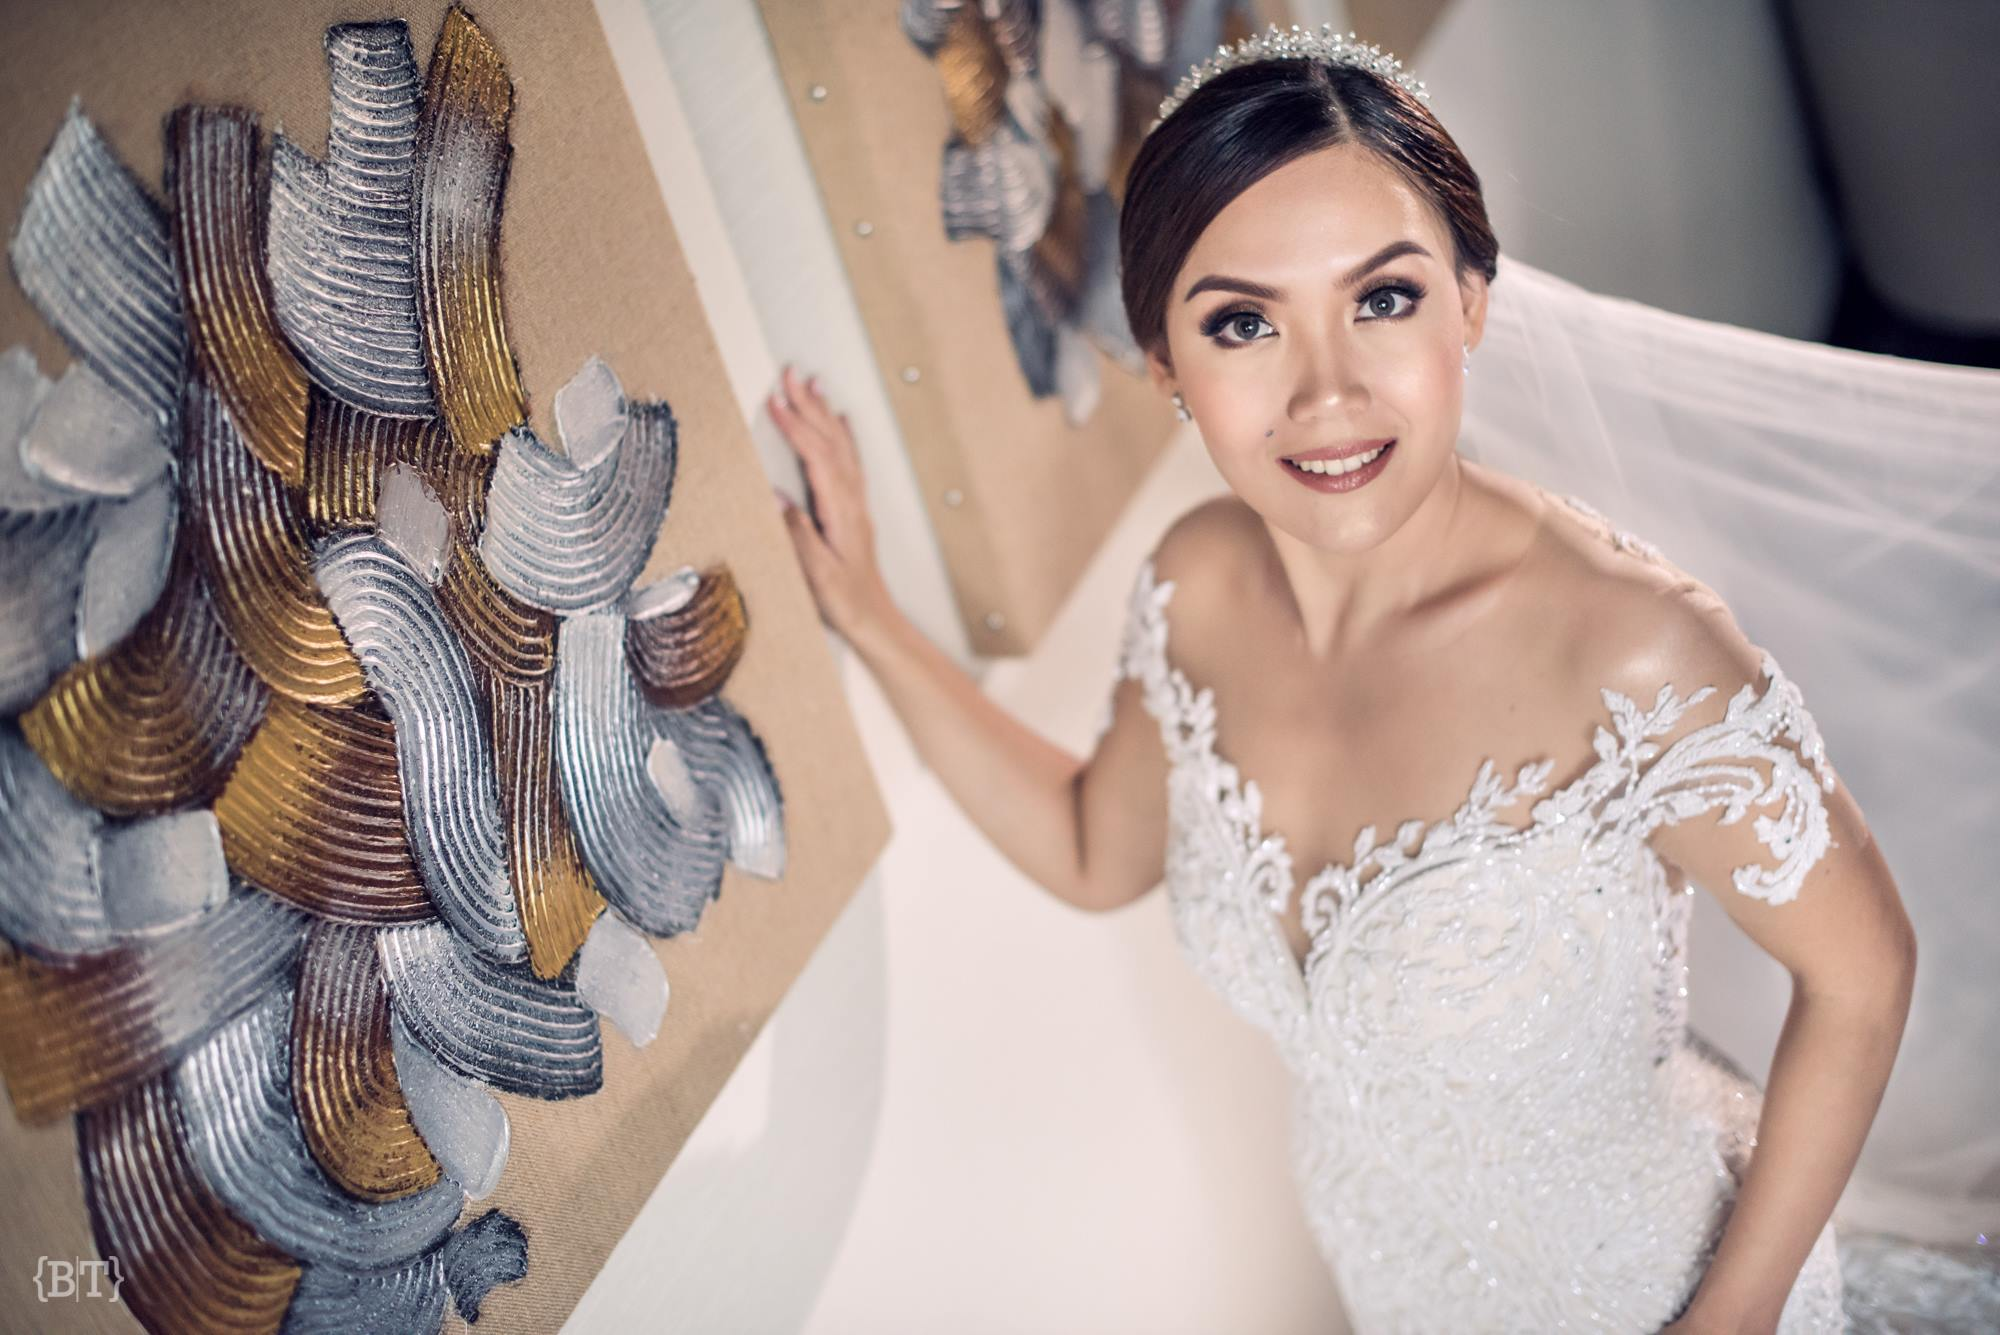 Ivory & Co. - We have exhibited with Ivory and Co. several times and without a doubt stunning design and eye for detail runs in this family…check out their page below and prepared to be wowed…